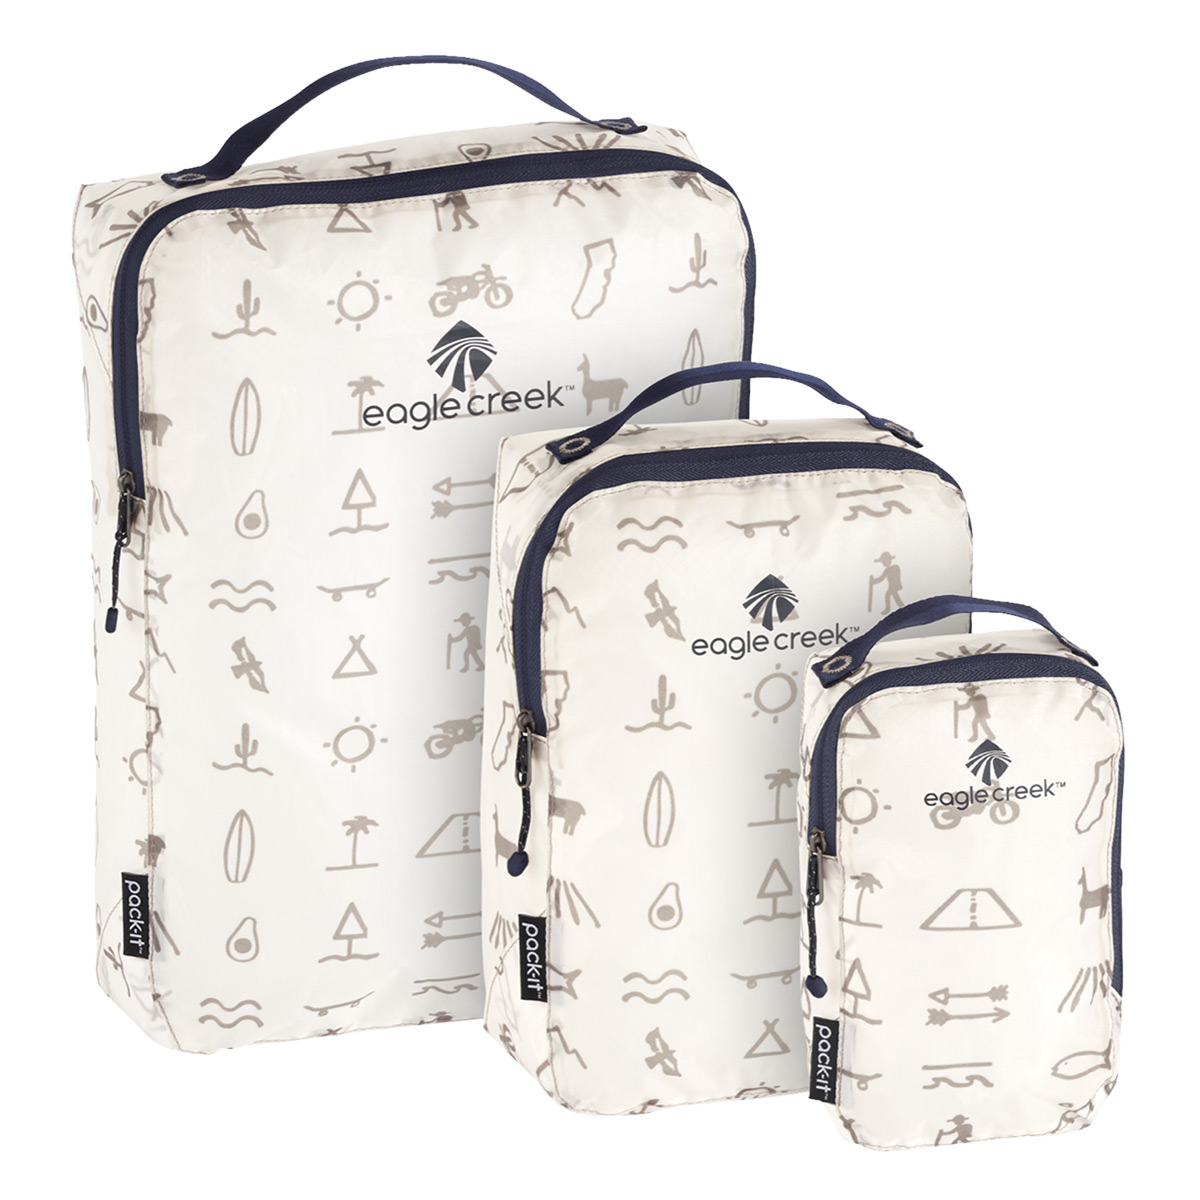 Eagle Creek Cali Hiero Specter Pack-It Cubes